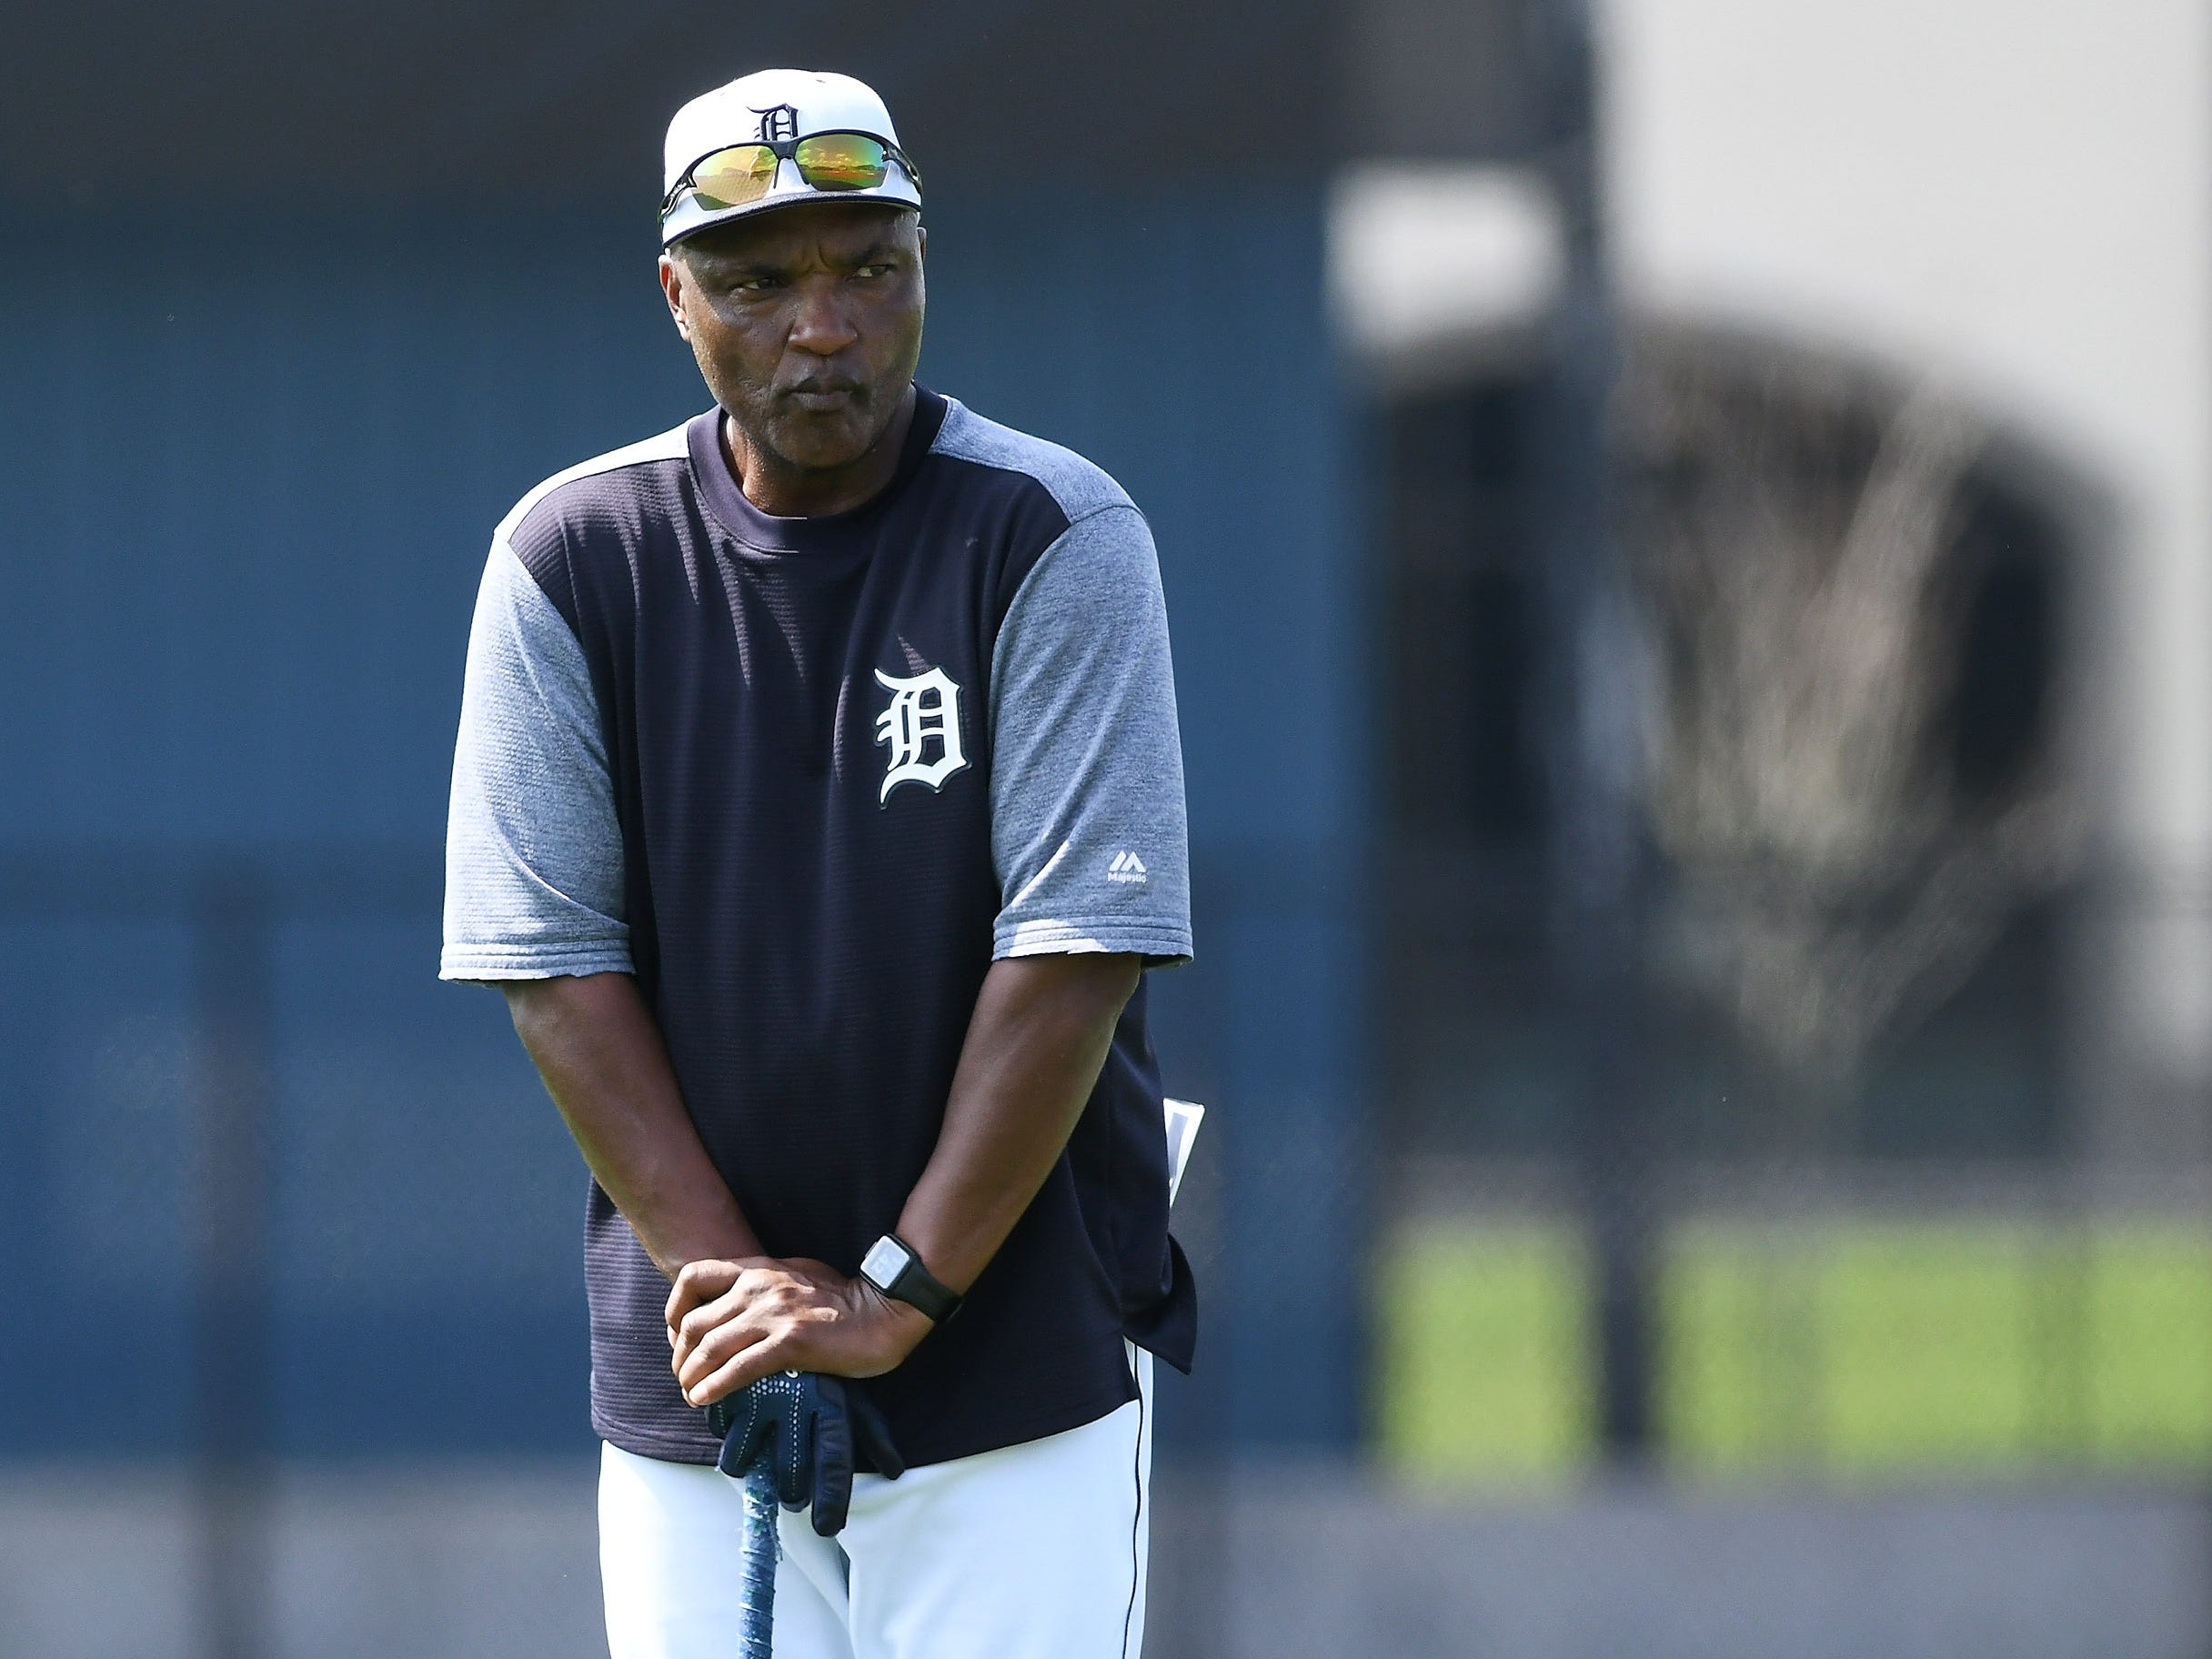 Tigers third base coach Dave Clark oversees sprints by outfielders.